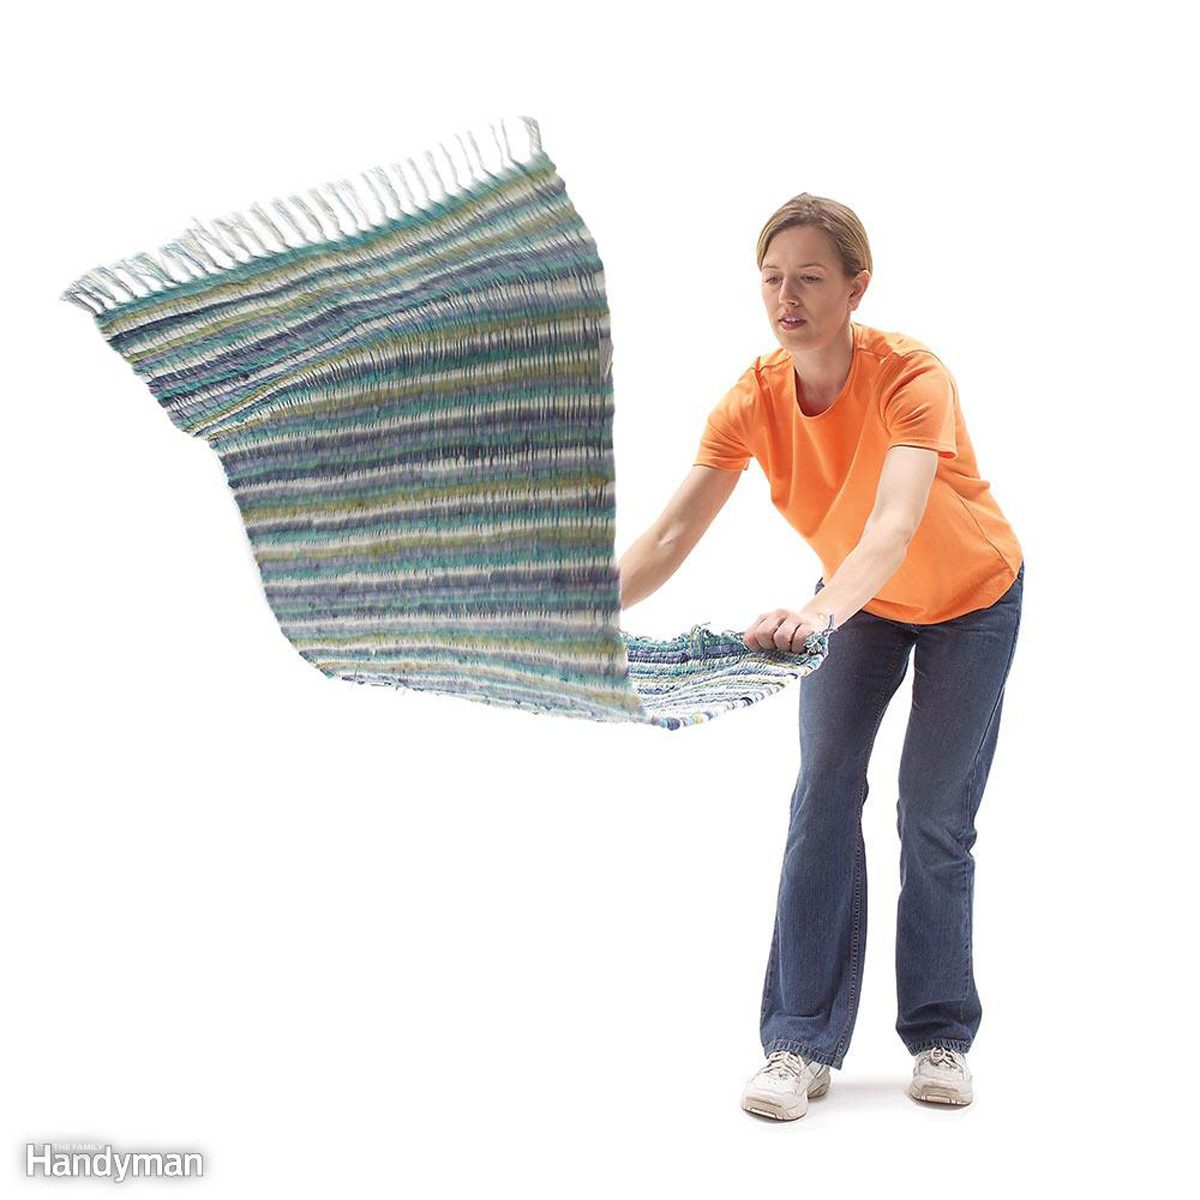 Cleaning Tips To Reduce Household Dust The Family Handyman Wire 3 Way Switch Beat And Shake Area Rugs